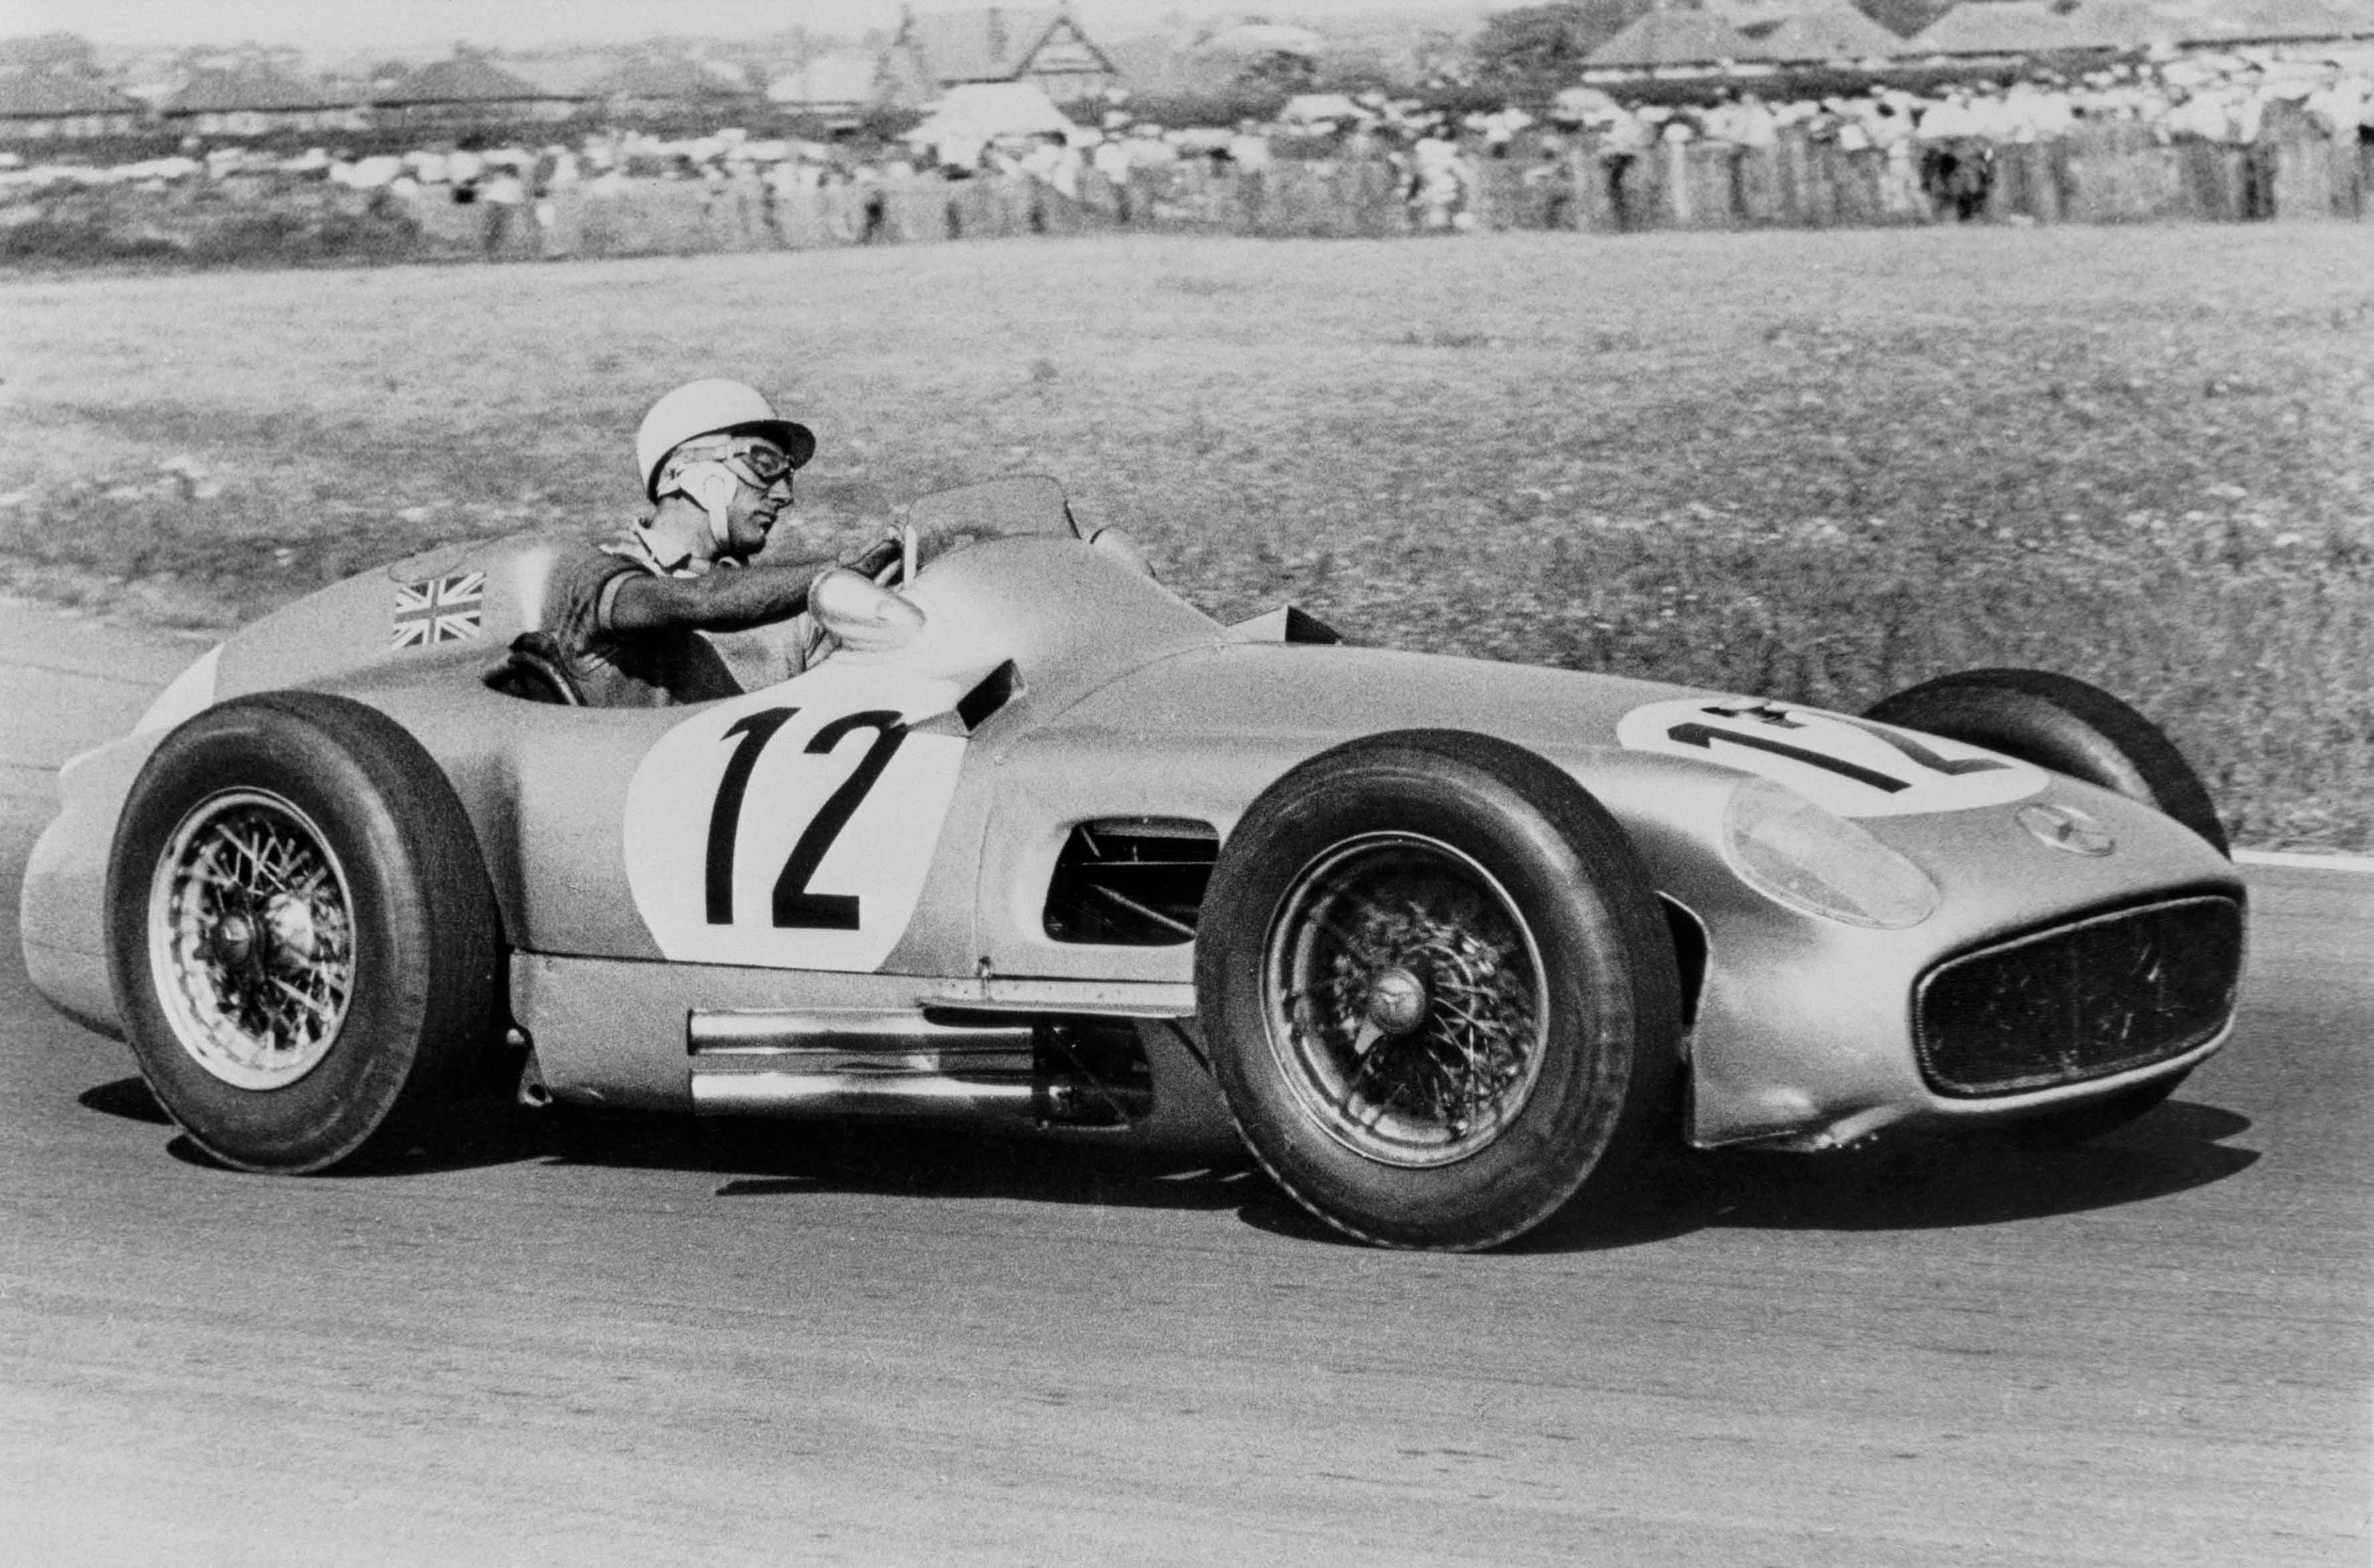 Großer Preis von Großbritannien in Aintree am 16. Juli 1955: Stirling MossBritish Grand Prix in Aintree on 16 July 1955: Stirling Moss